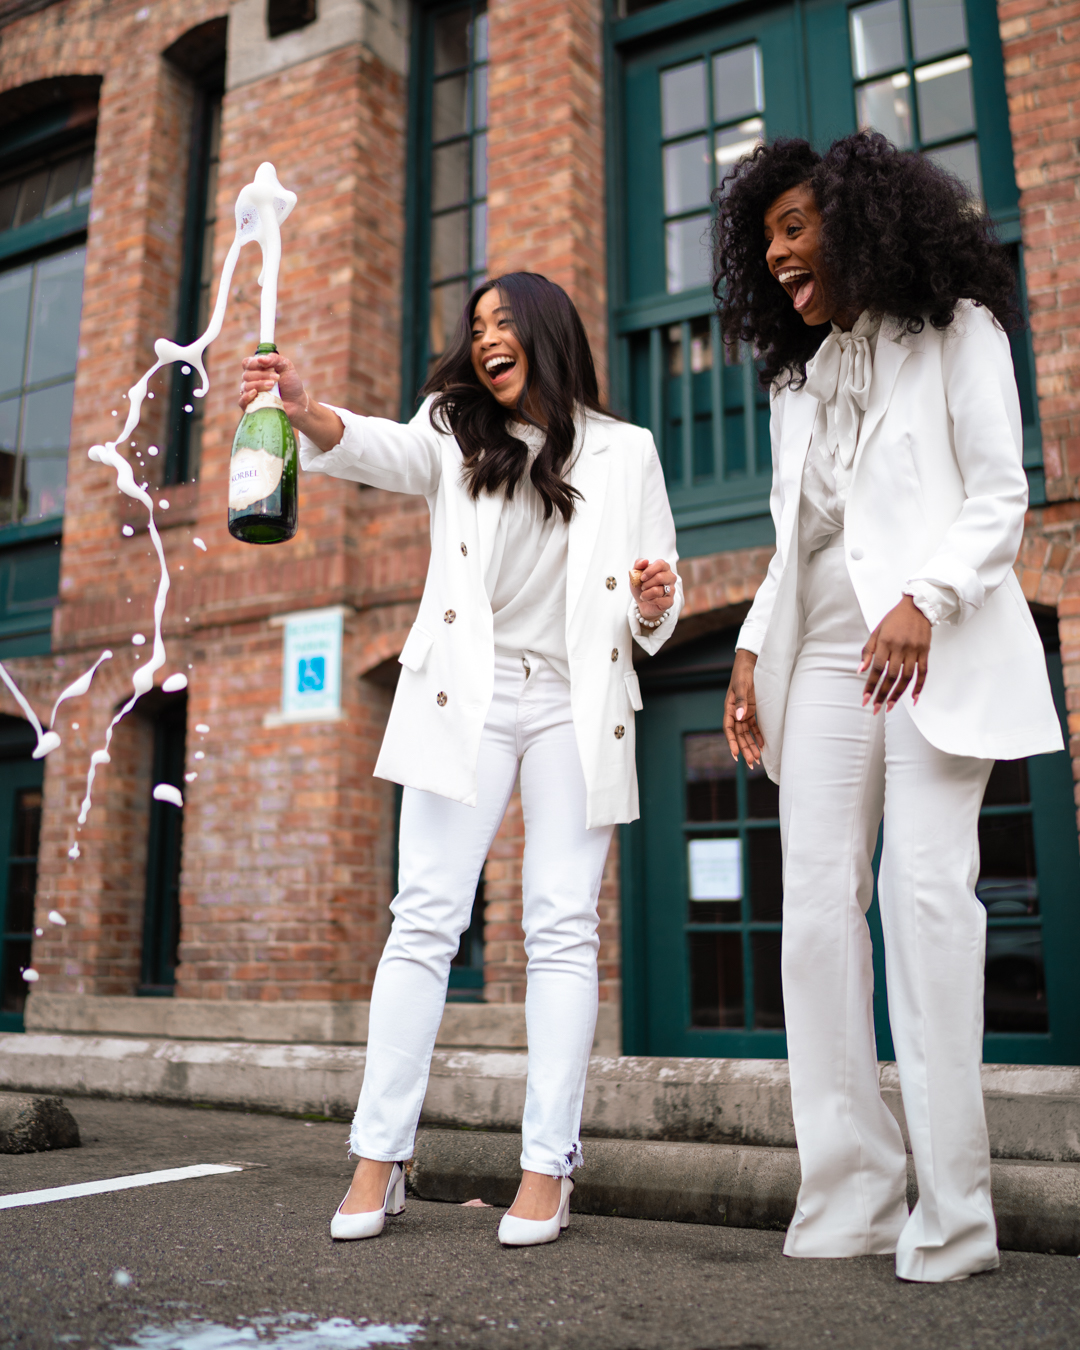 Celebration photo - champagne photo shoot ideas - Inauguration Day 2021 - Kamala Harris inspired outfit - Women in White Suits - image from www.emmasedition.com - copyright @emmasedition